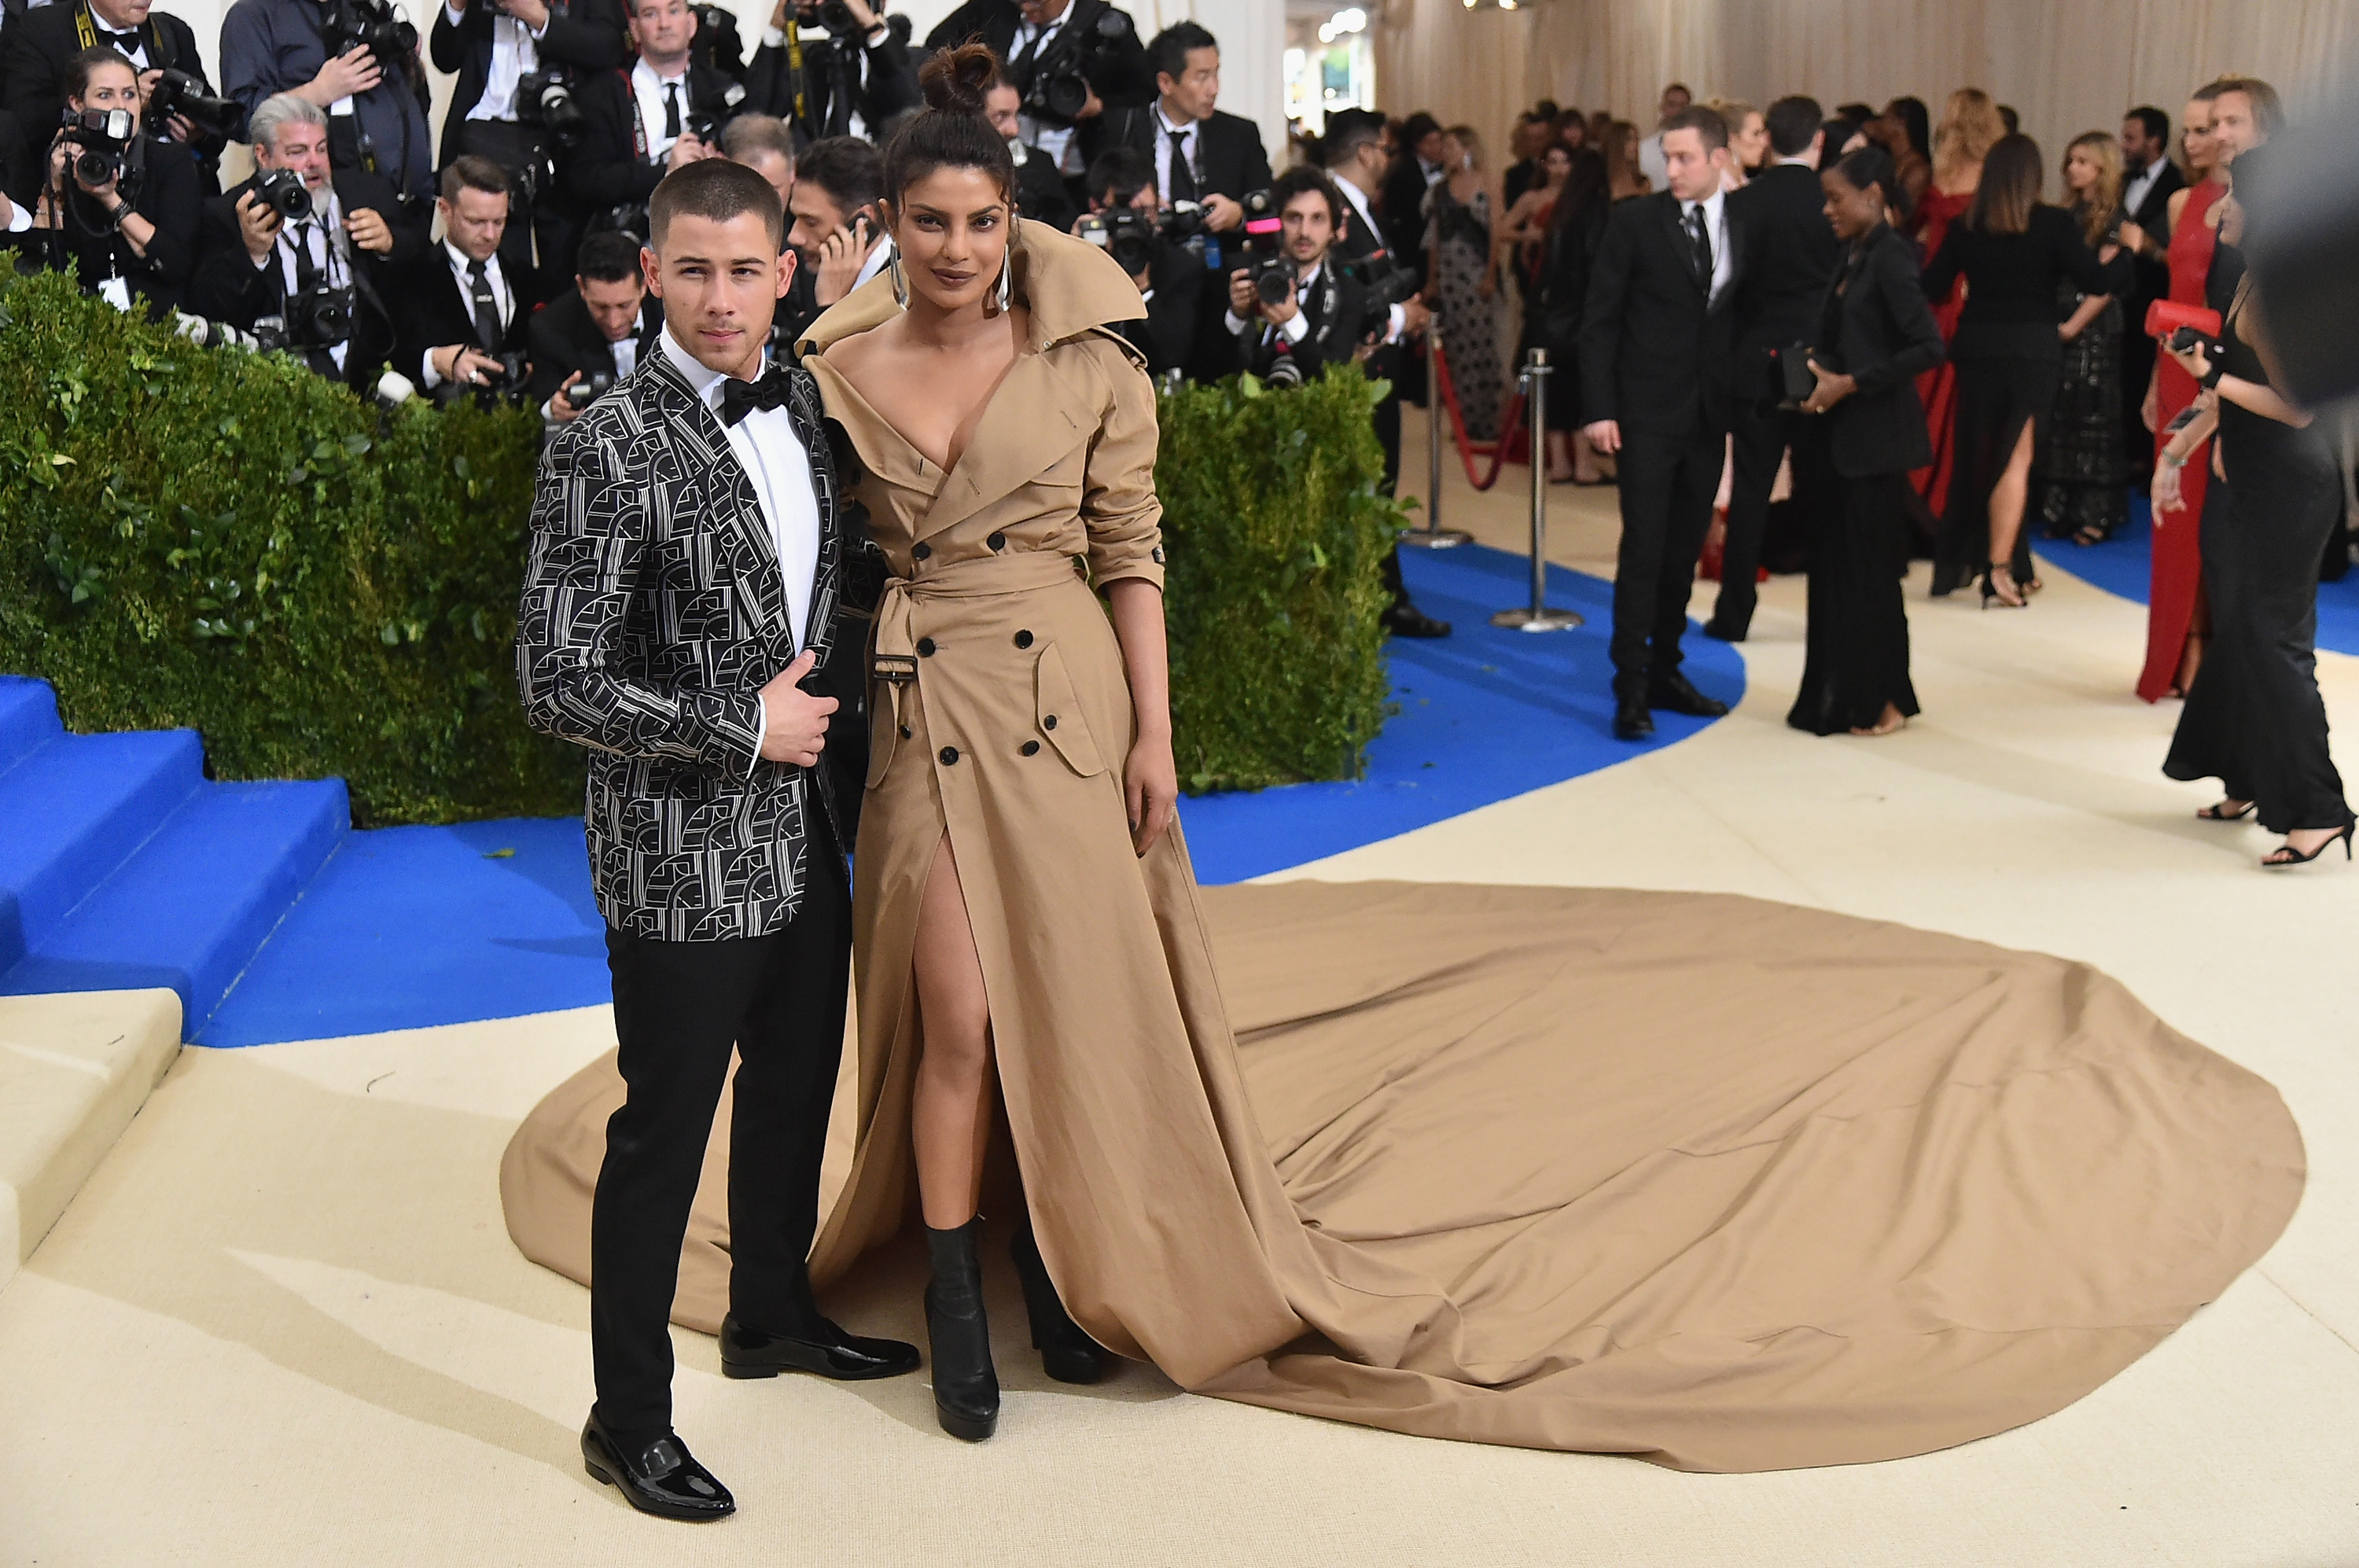 Nick Jonas (L) and Priyanka Chopra attend the 'Rei Kawakubo/Comme des Garcons: Art Of The In-Between' Costume Institute Gala at Metropolitan Museum of Art on May 1, 2017 in New York City.